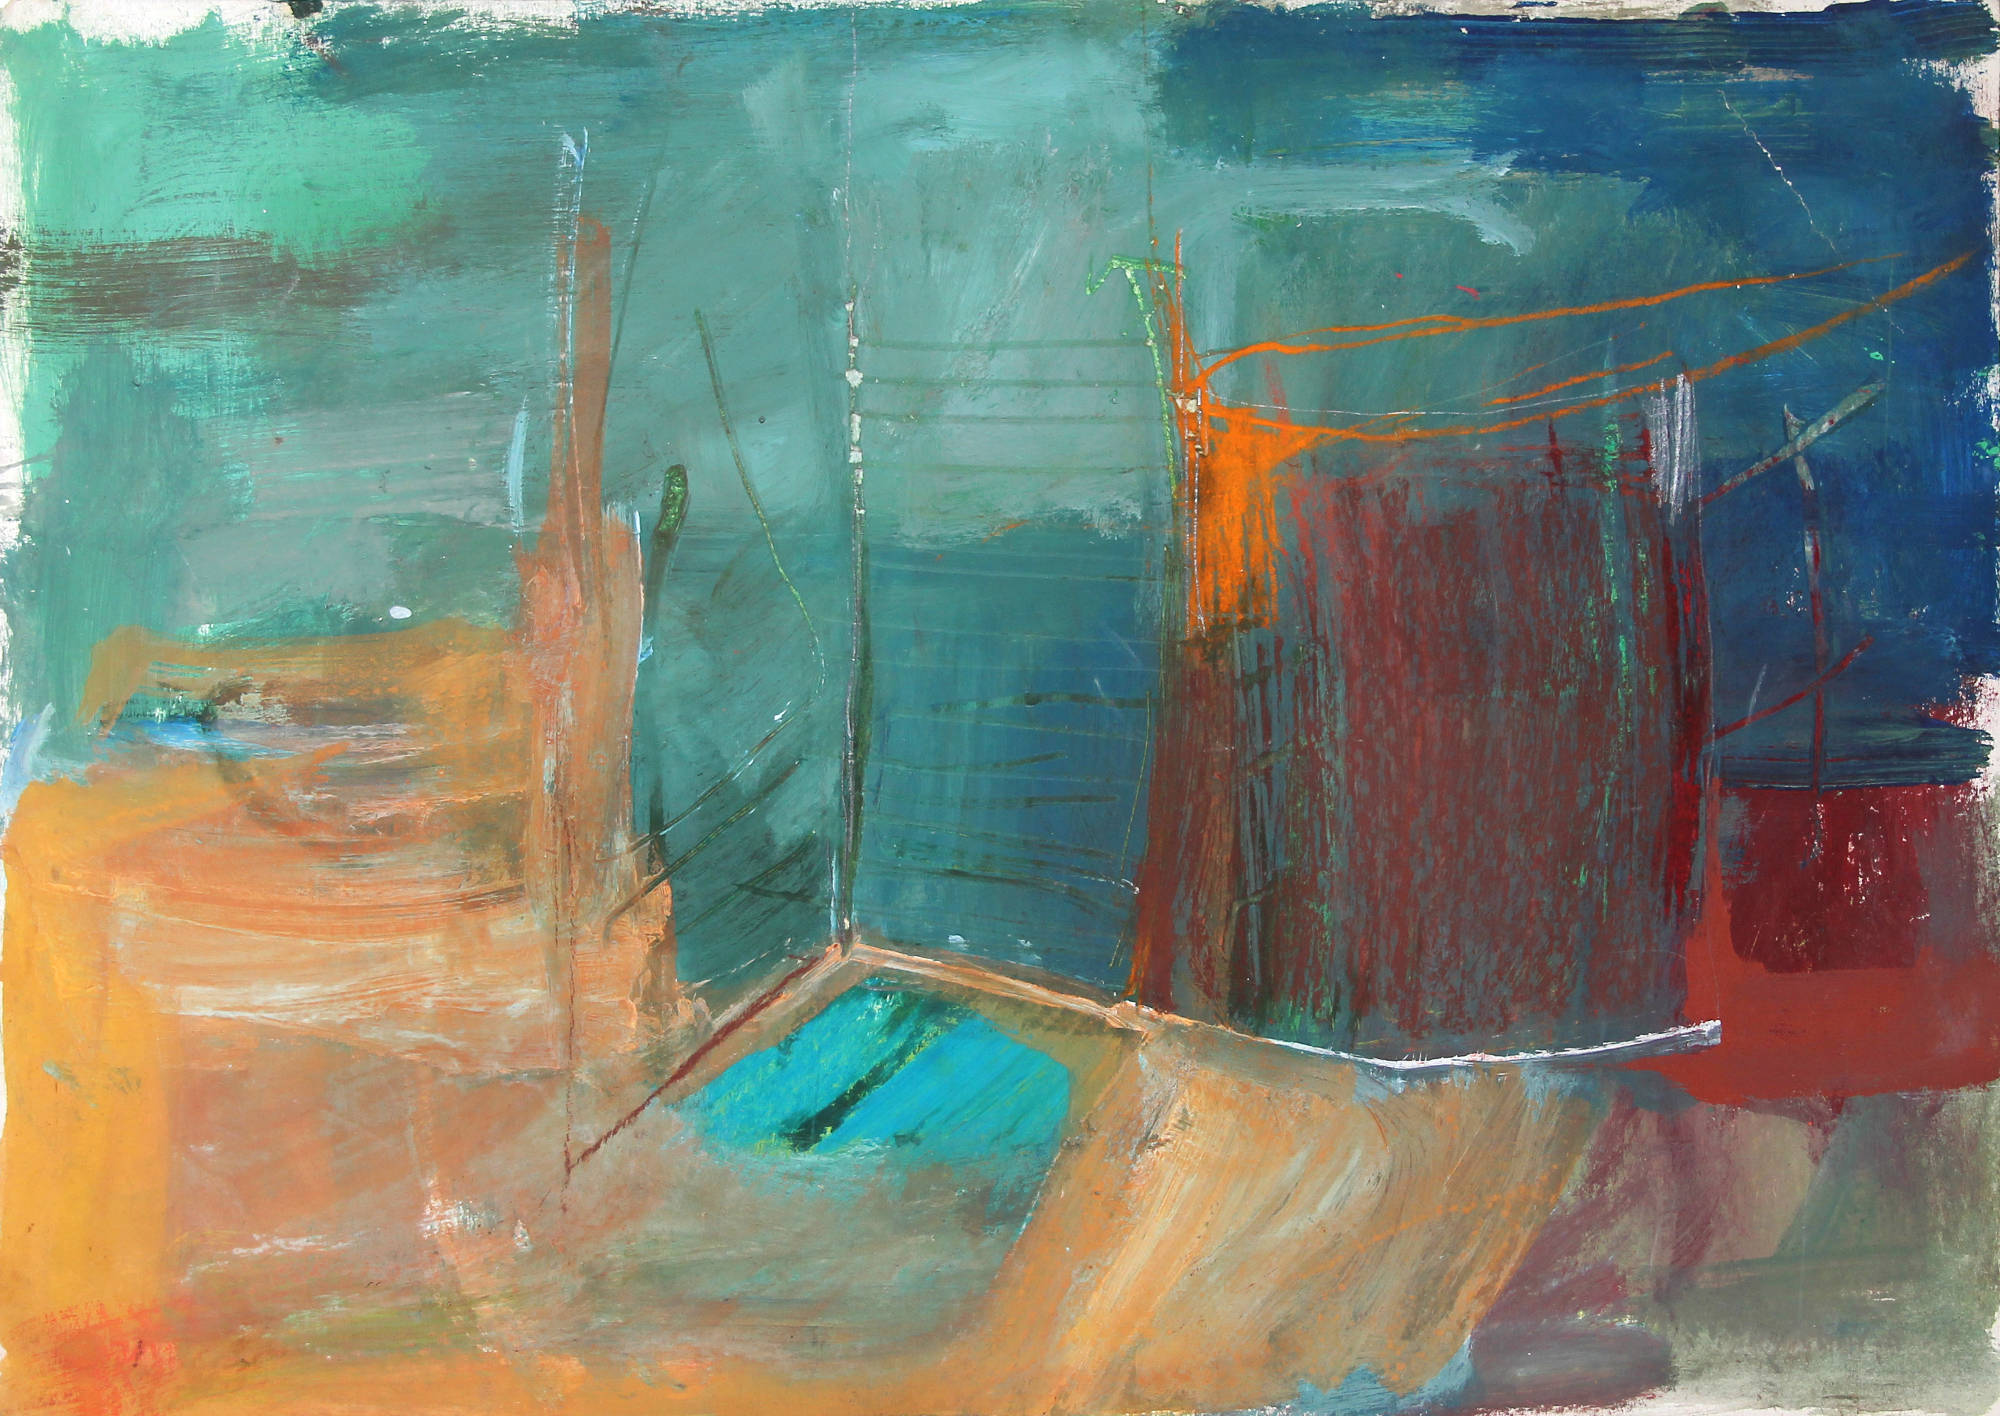 Buy and sell original art Online - Buy contemporary art online